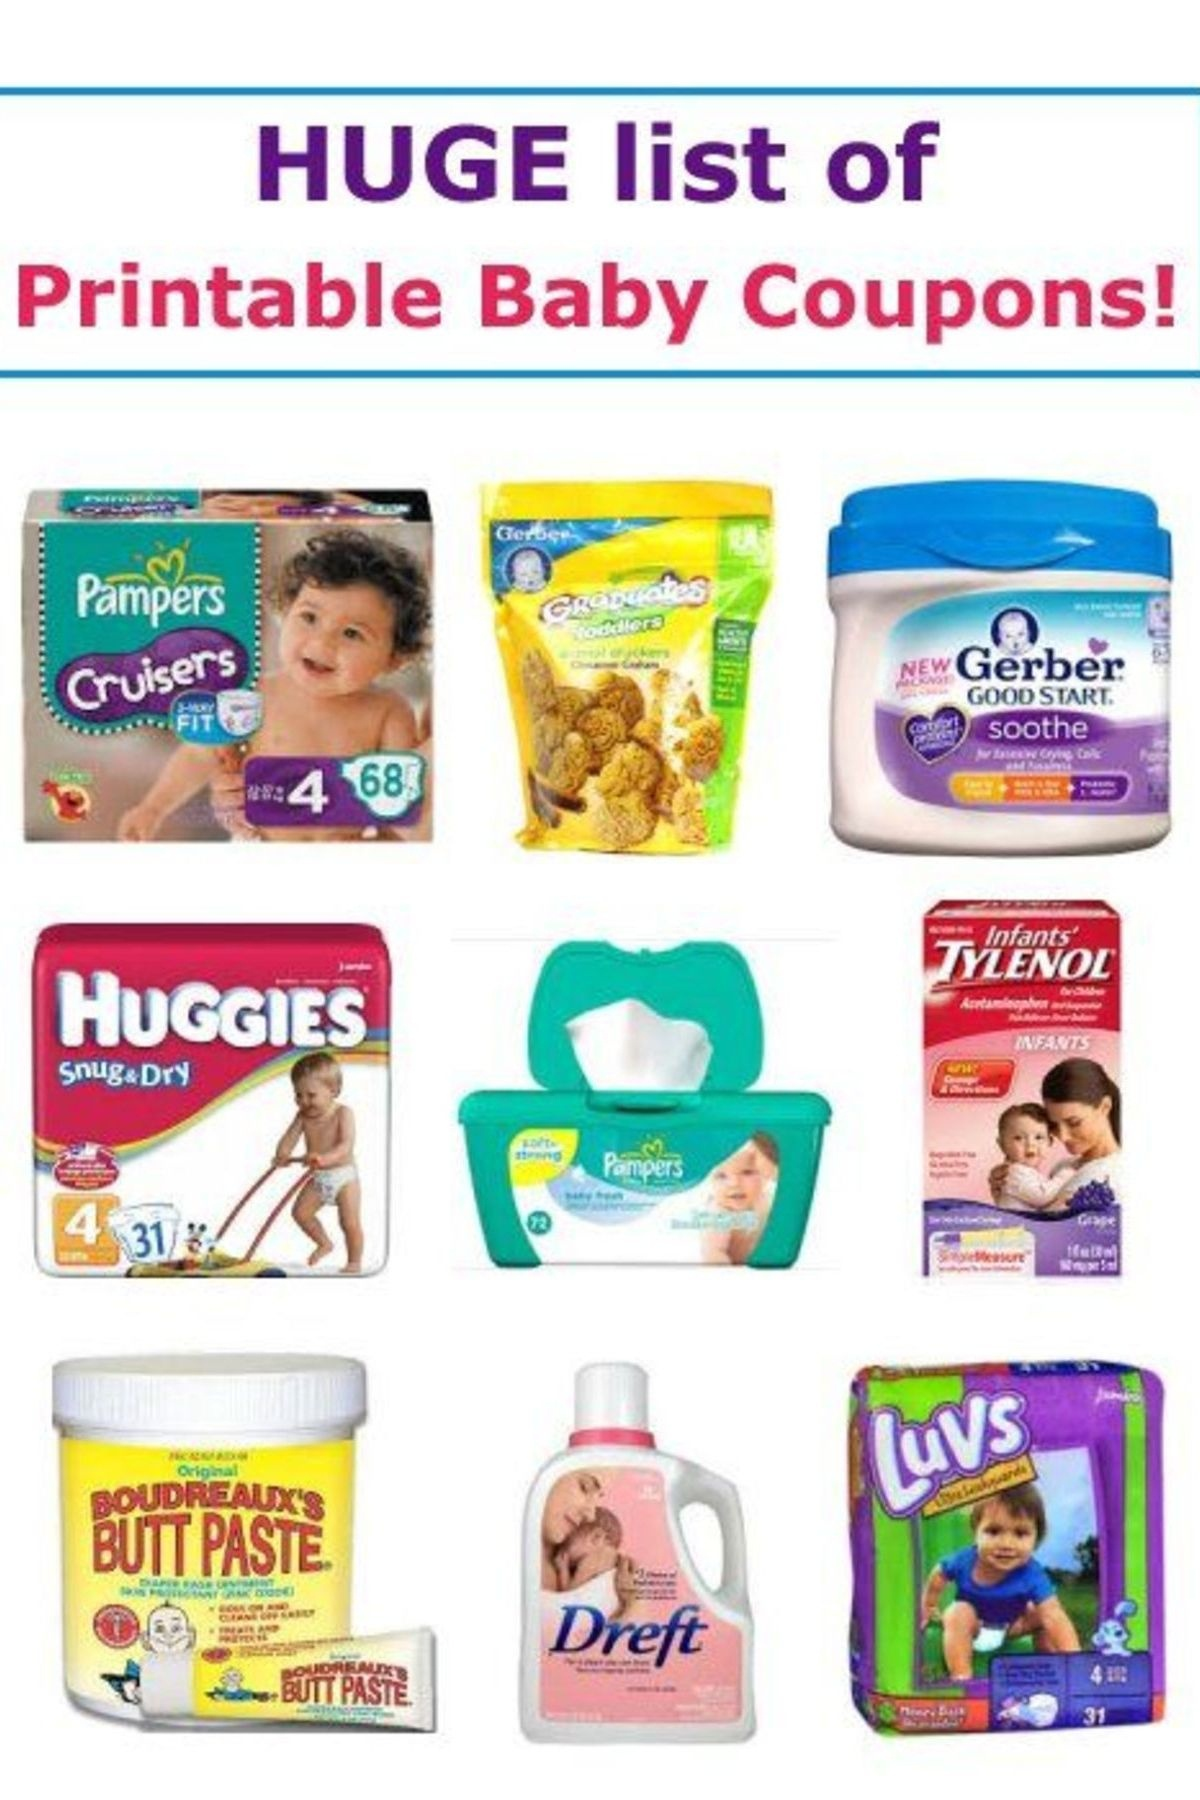 17 Printable Baby Coupons | Baby On A Budget | Baby Coupons, Baby - Free Printable Similac Baby Formula Coupons